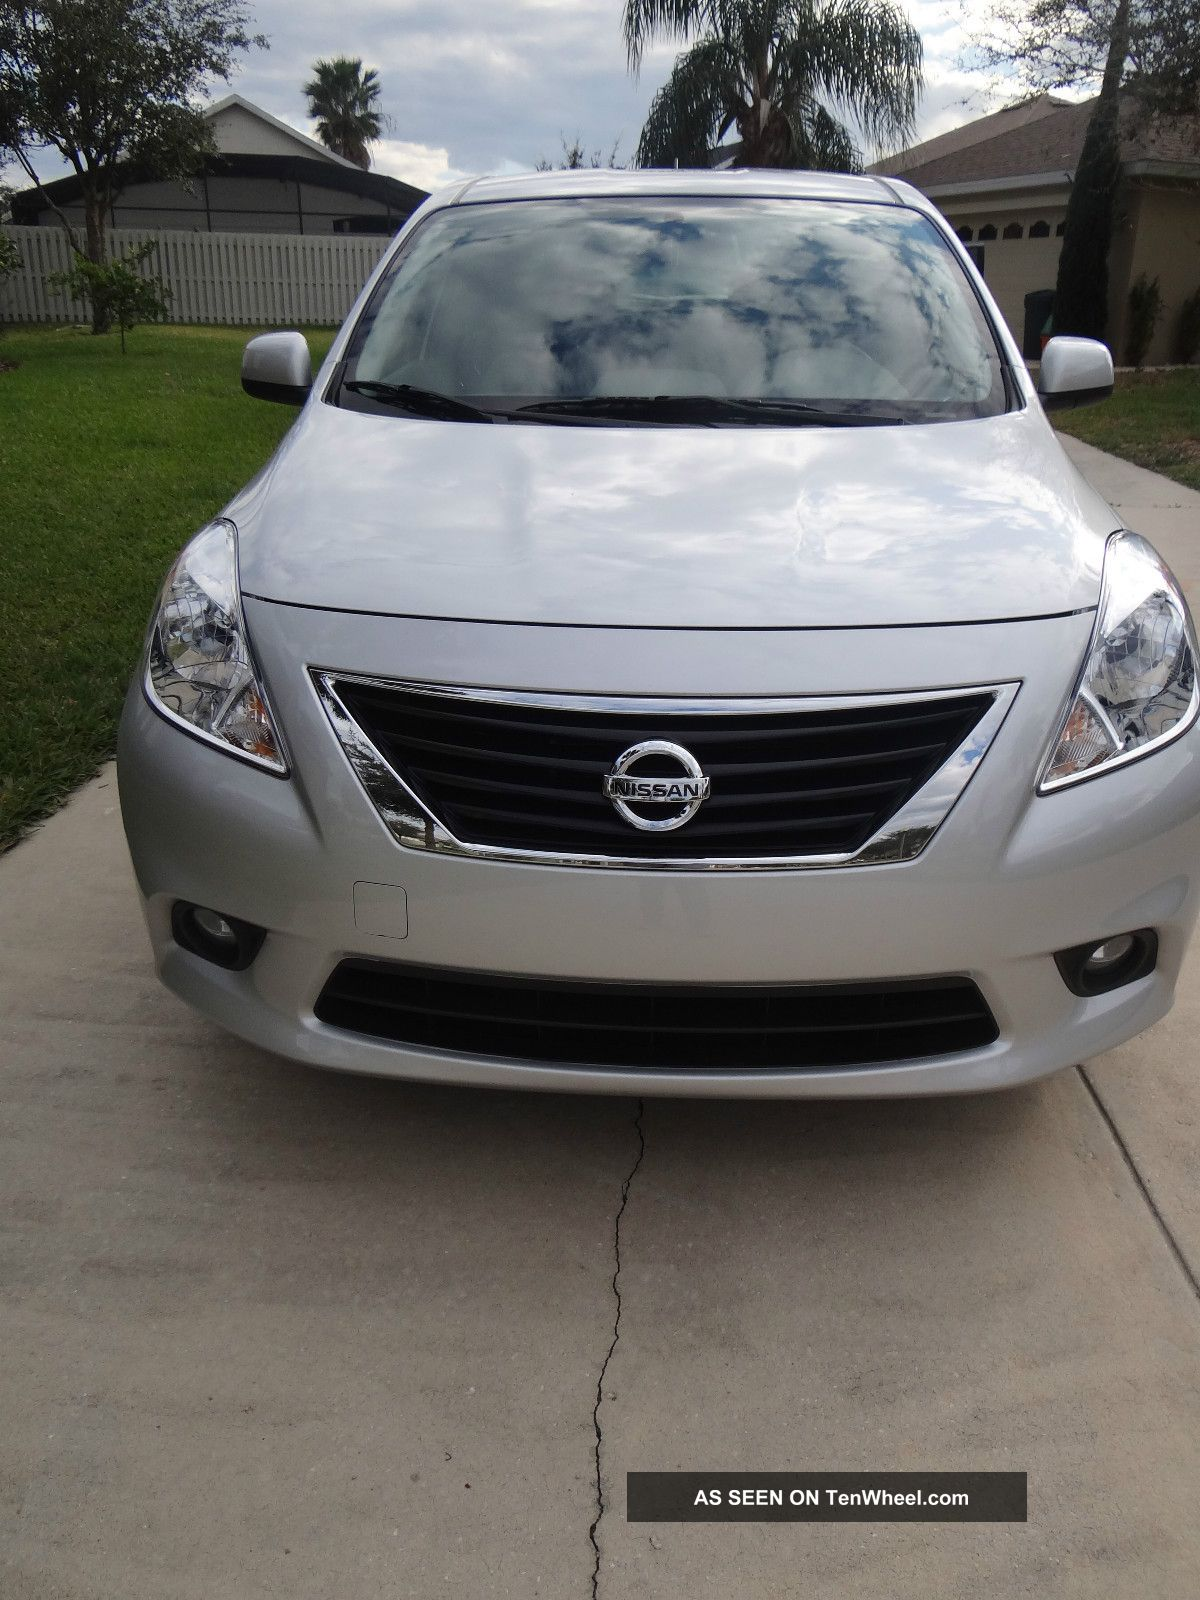 Nissan Versa 2012 1.  6 Sl Sedan Versa photo